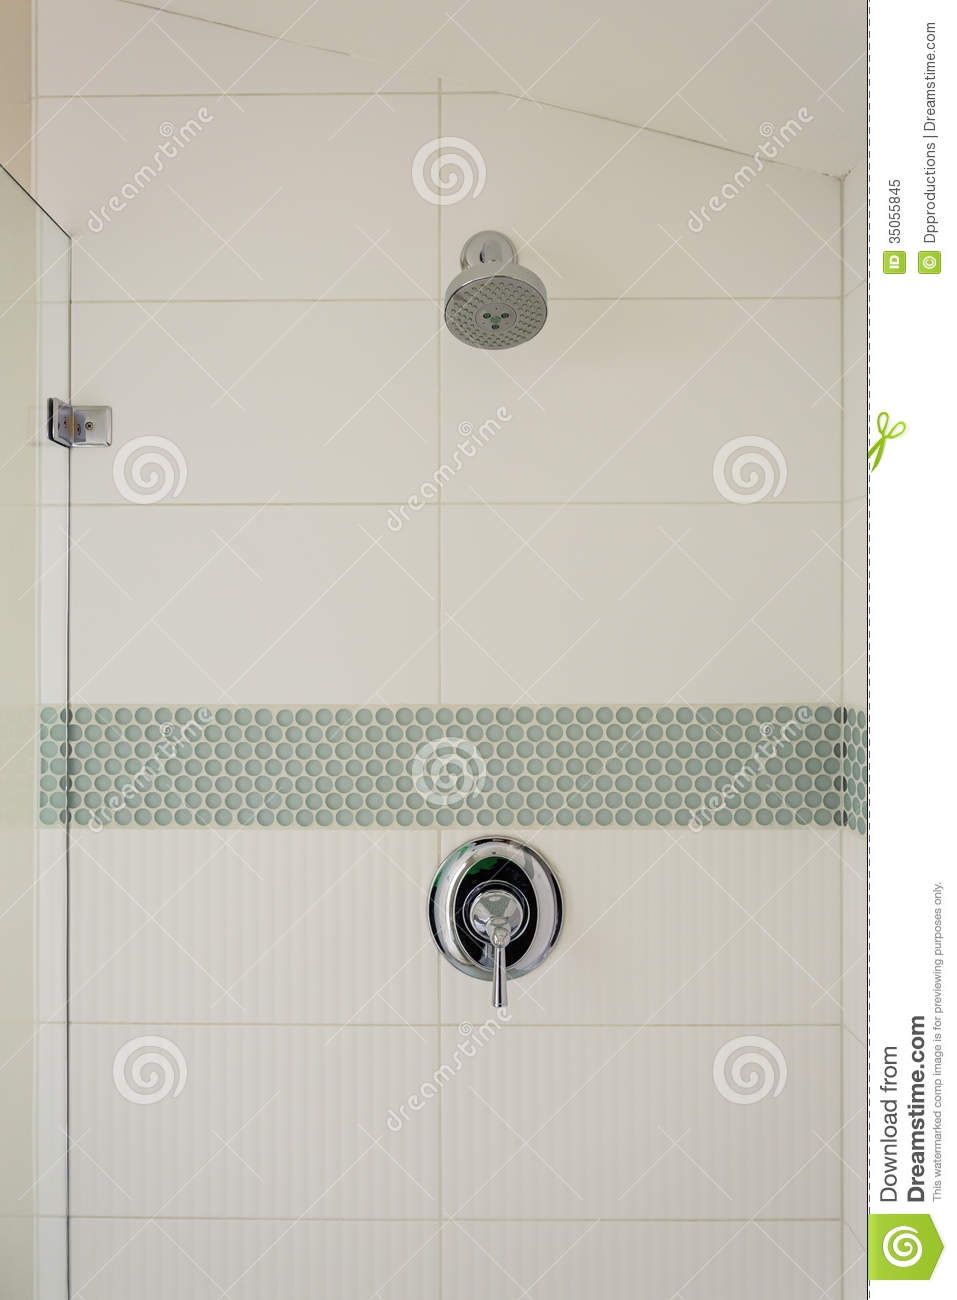 Bathroom Shower And Fixture Stock Image Image Of Bath